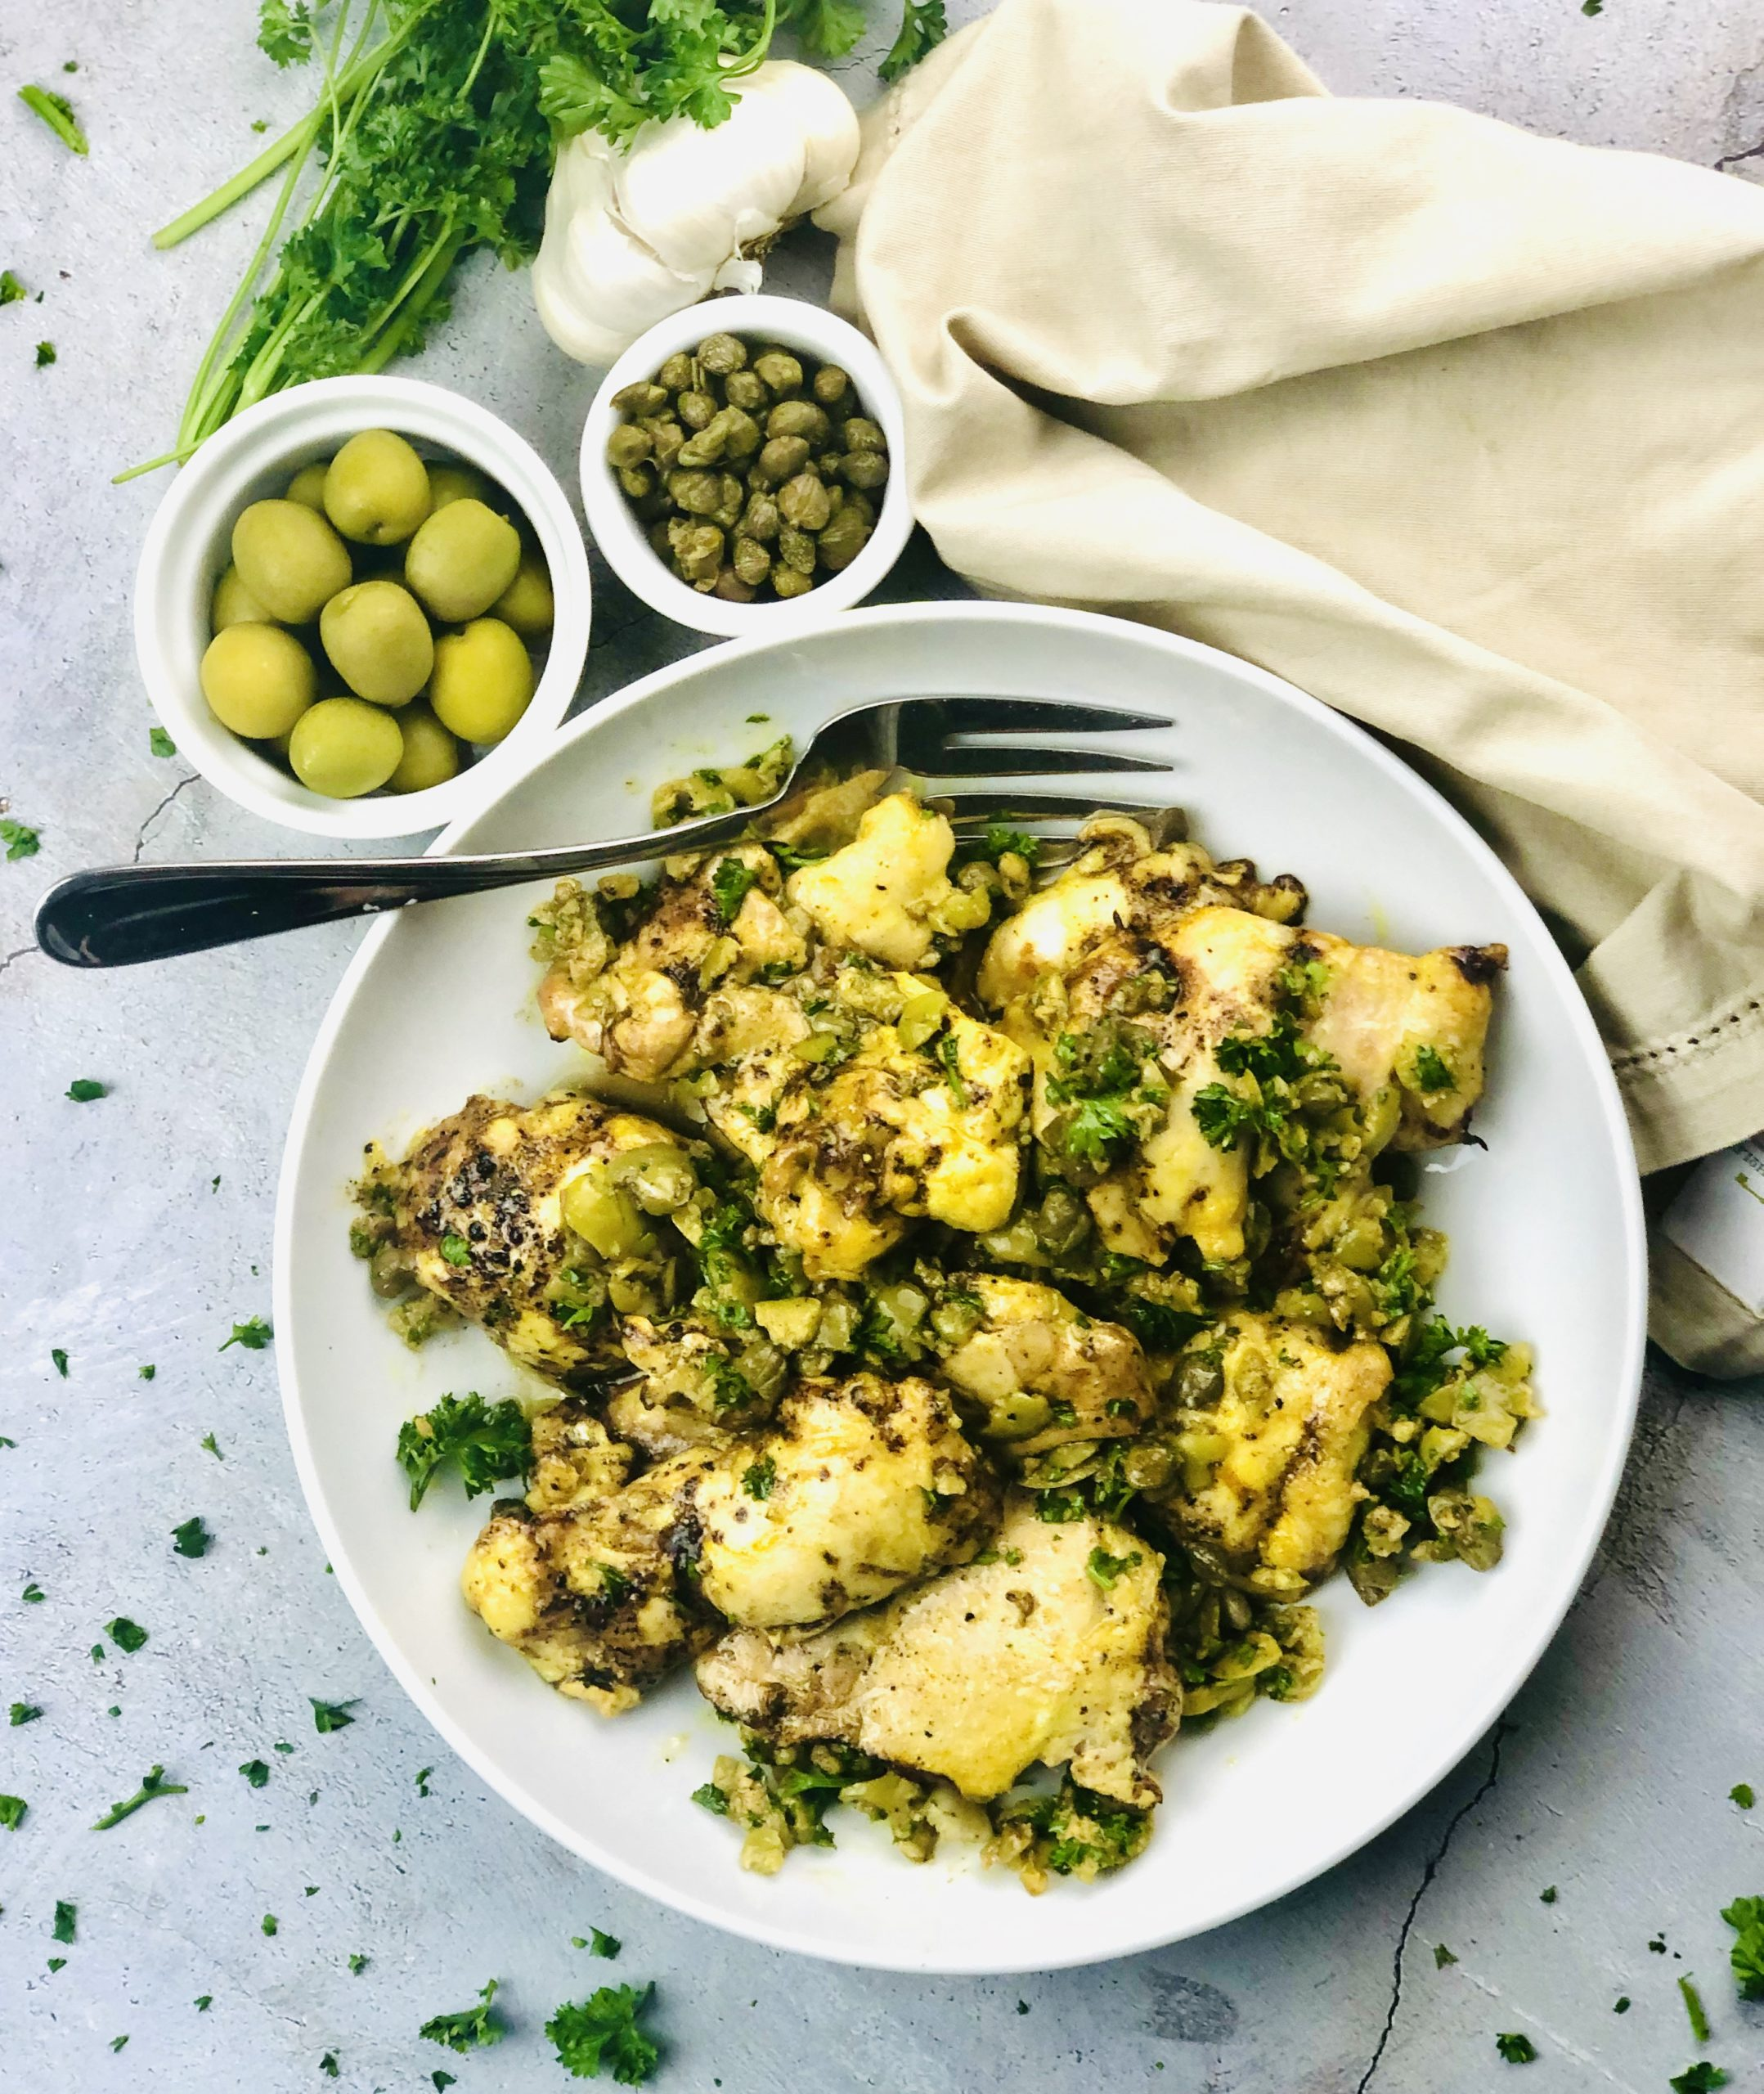 Balsamic Chicken with Olive and Caper Dressing